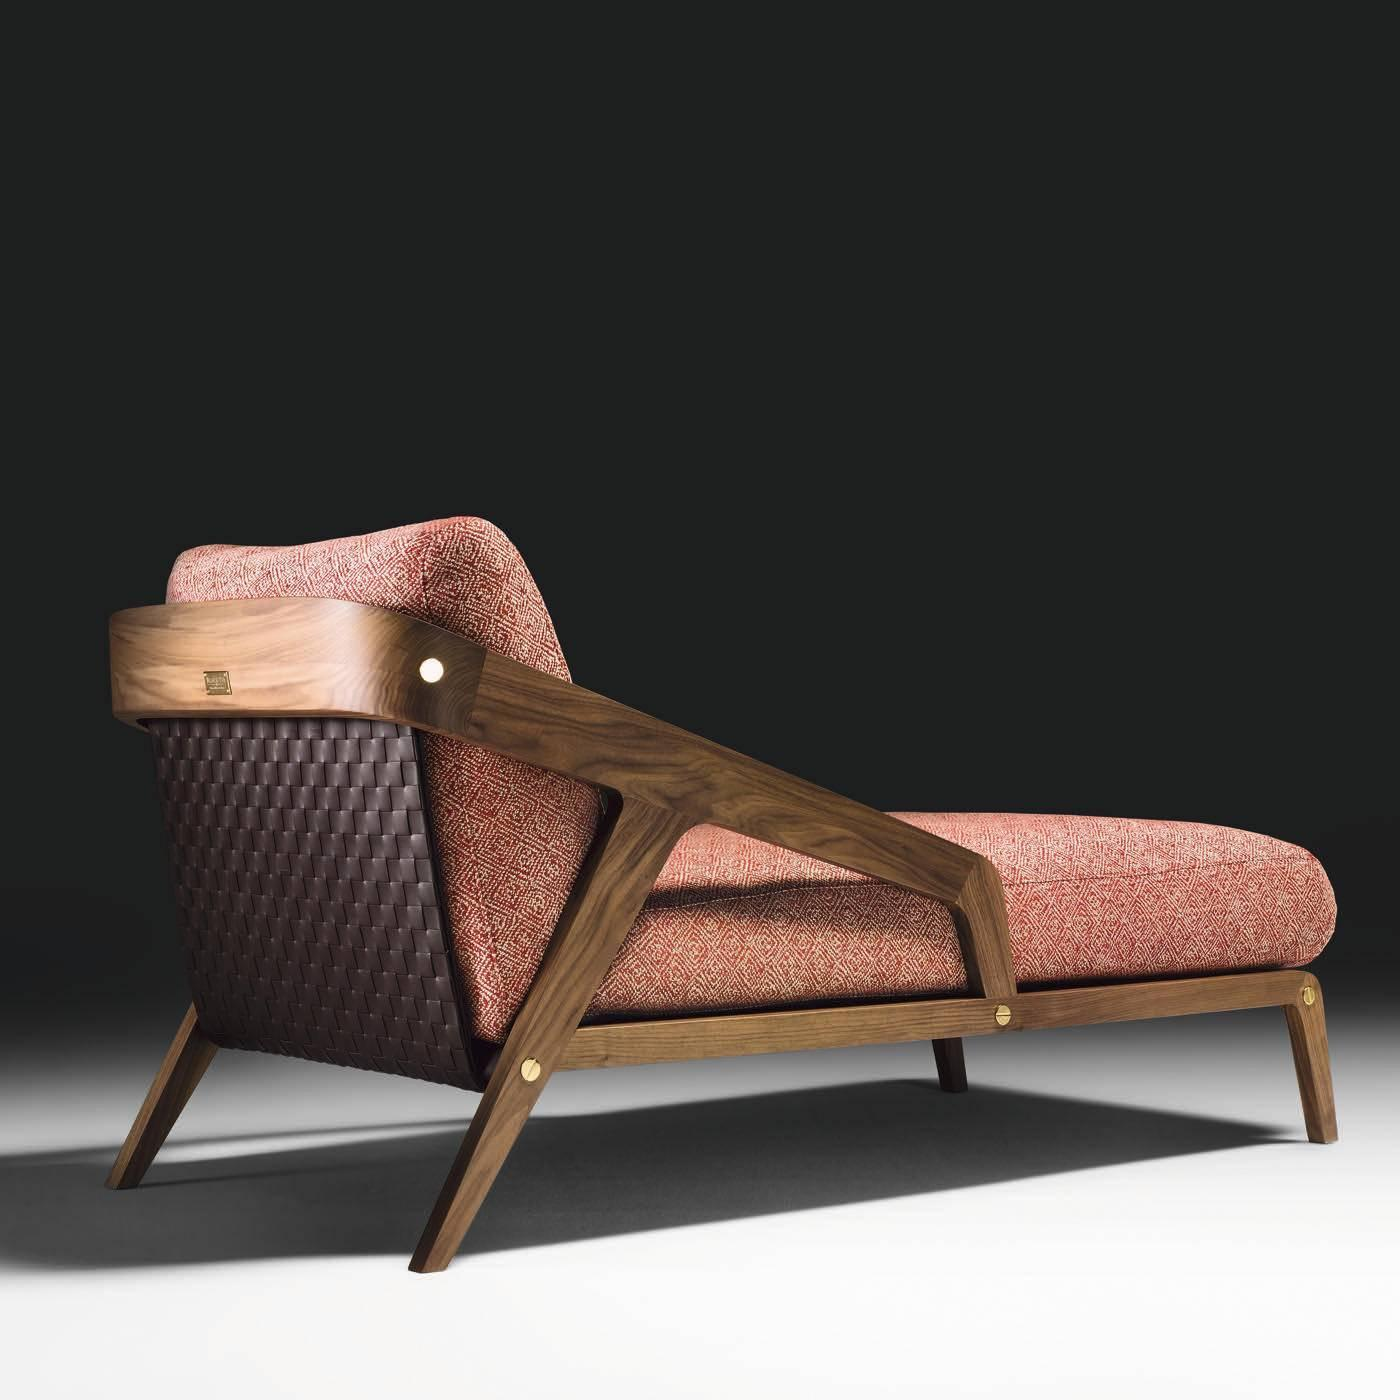 Fris chaise longue for sale at 1stdibs for Chaise longue for sale